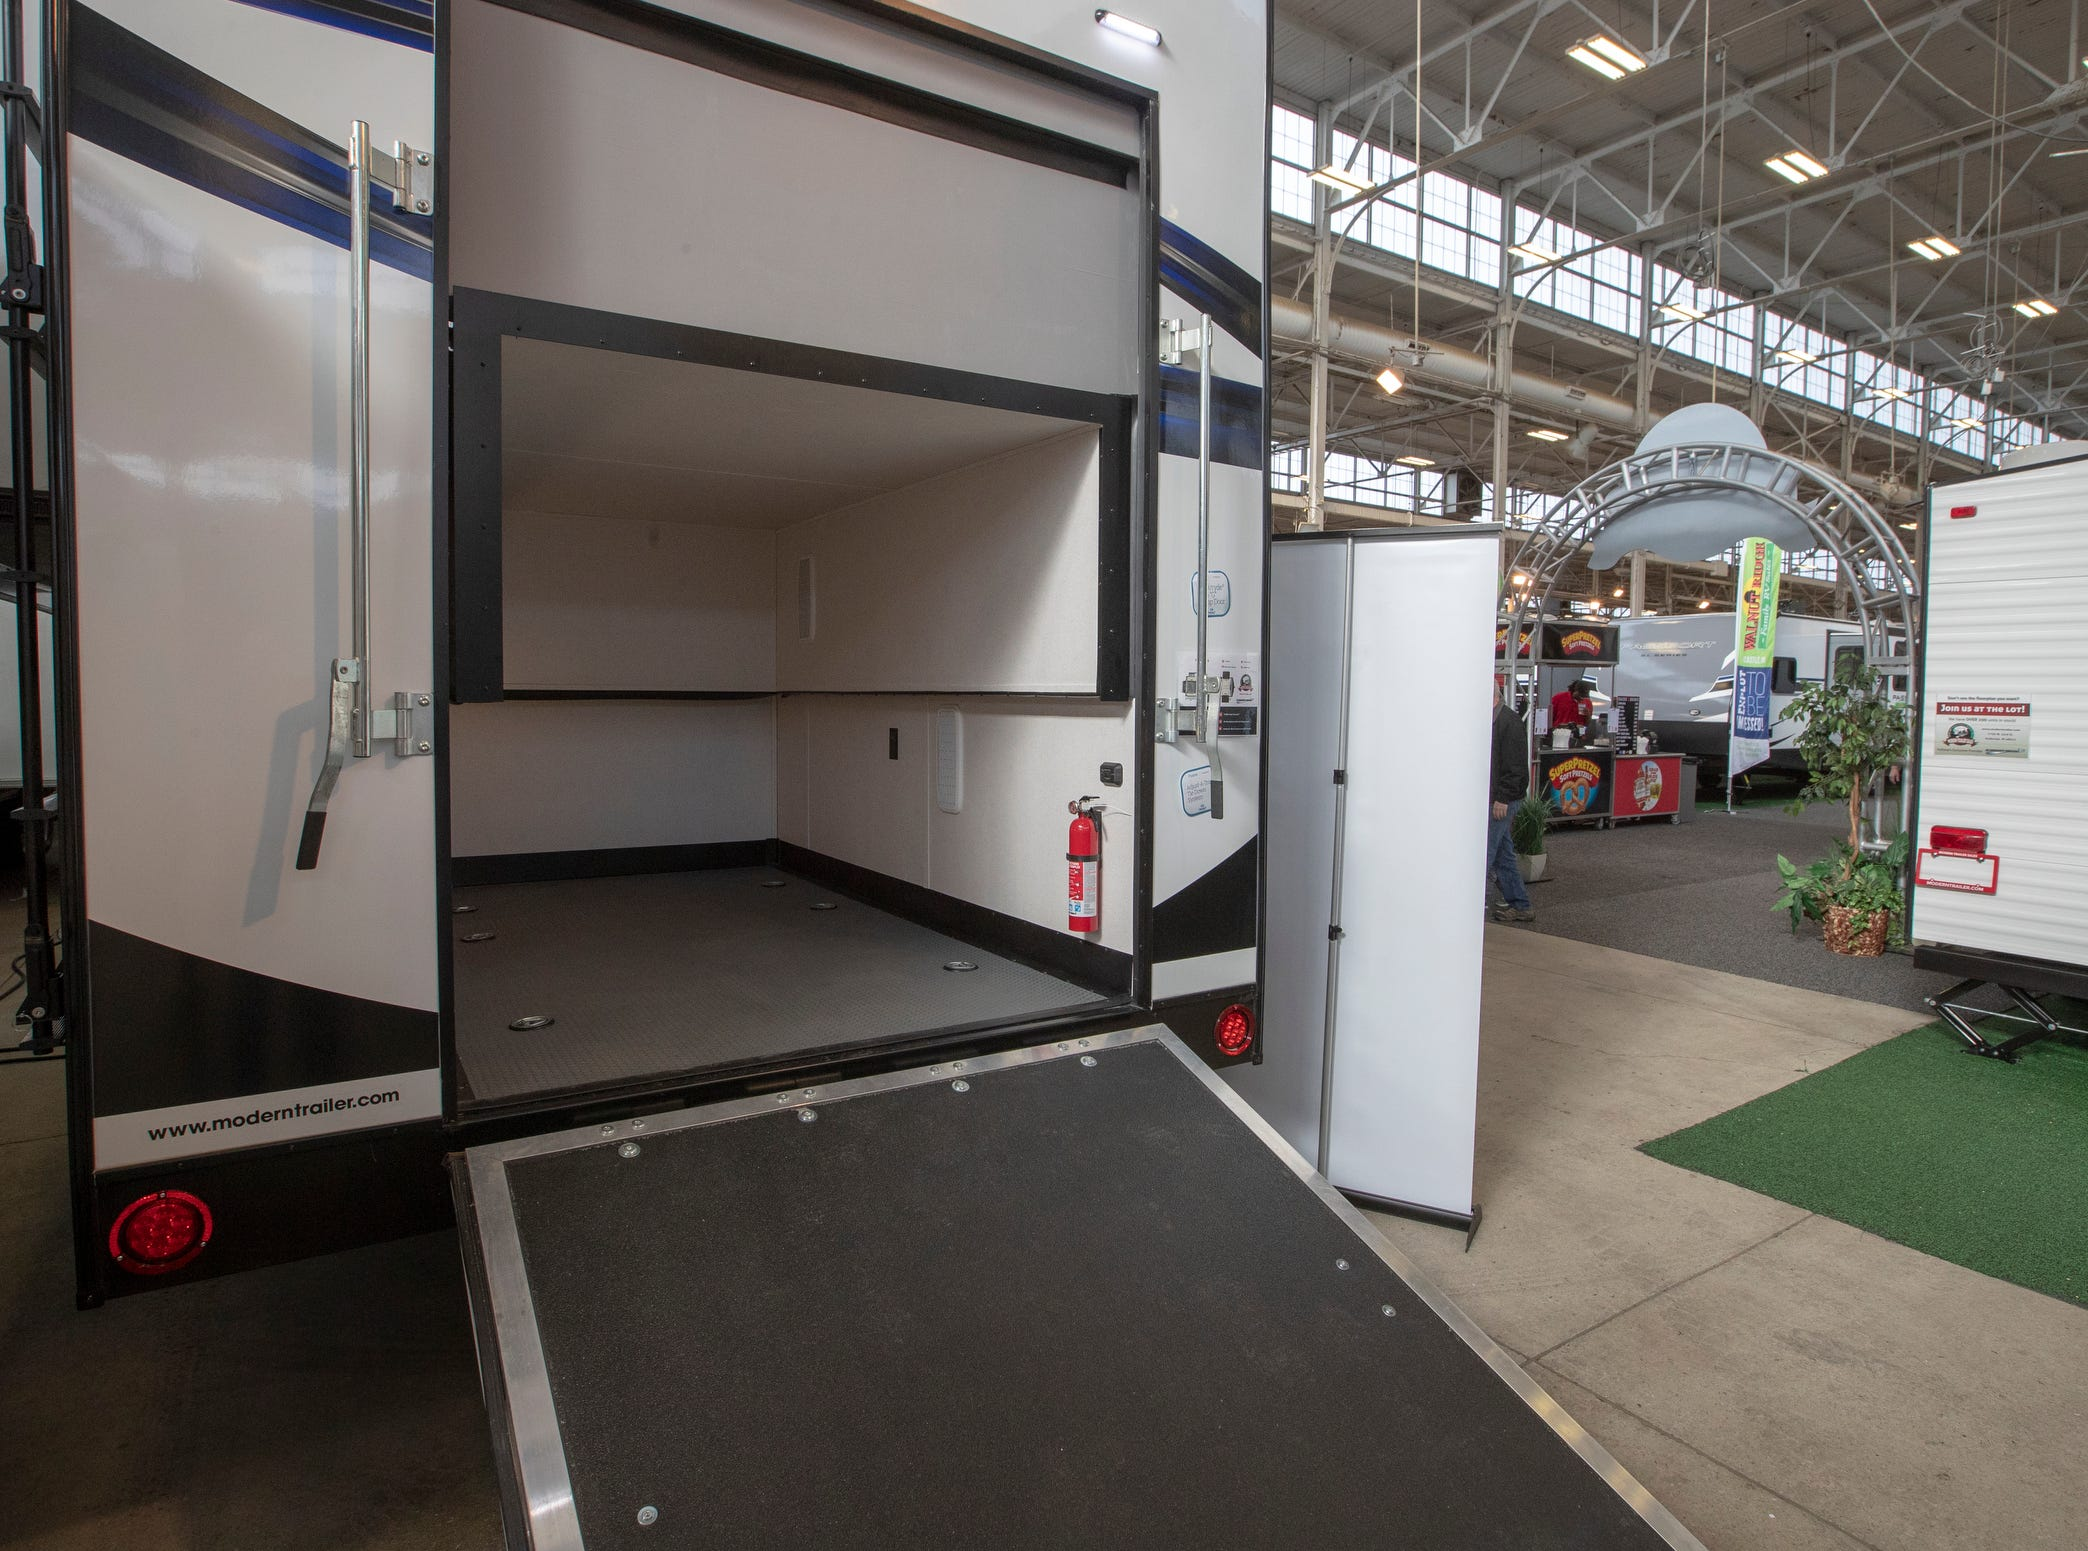 A Fuzion toy hauler, able to carry things like motorcycles while having lots of livable space, at the Indy RV Expo, Indiana State Fairgrounds, Indianapolis, Sunday, January 6, 2019. The show runs through the 13th.